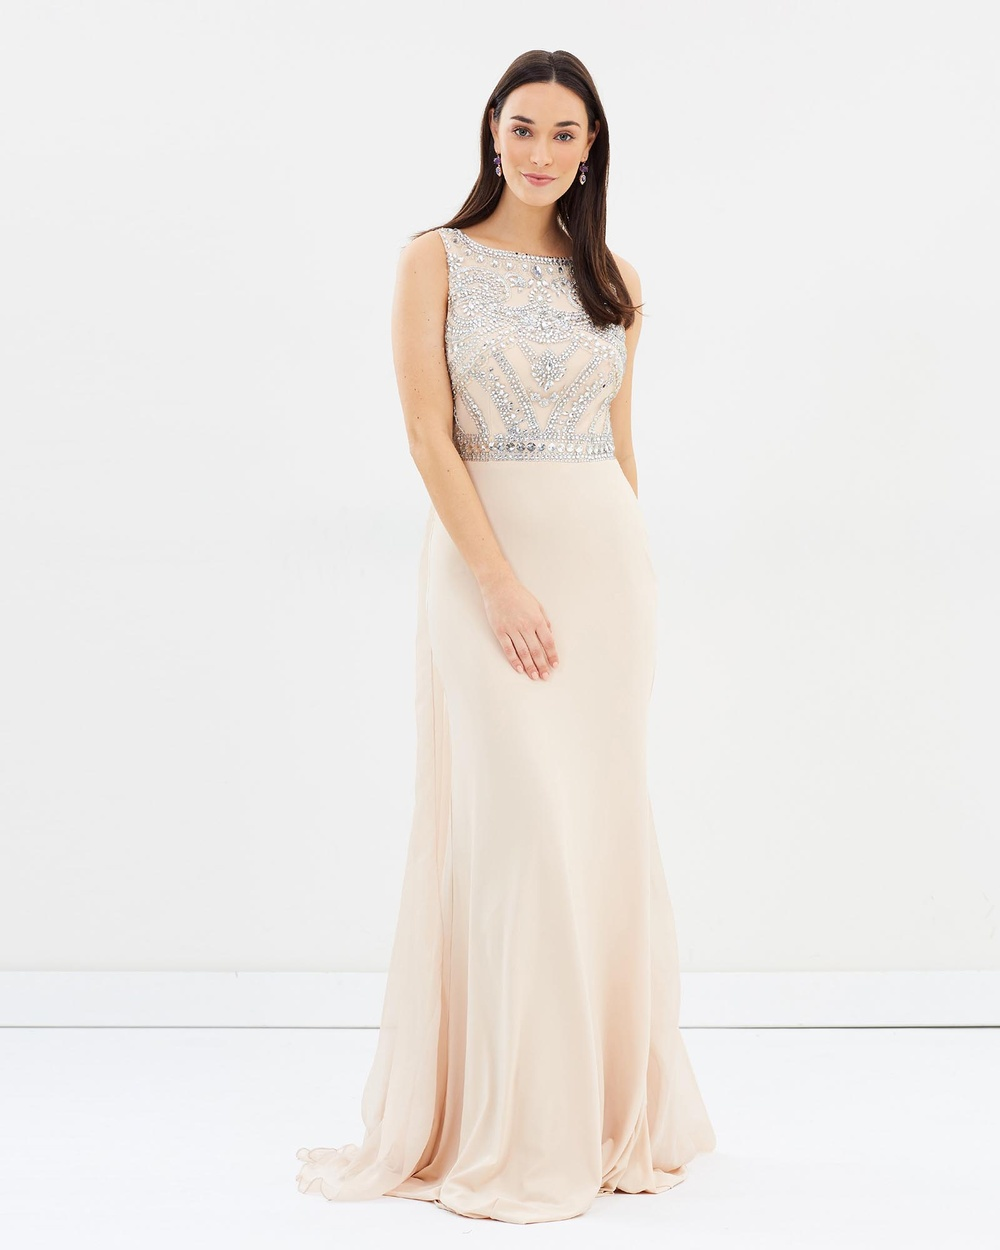 ROXCIIS Nude Willow Gown